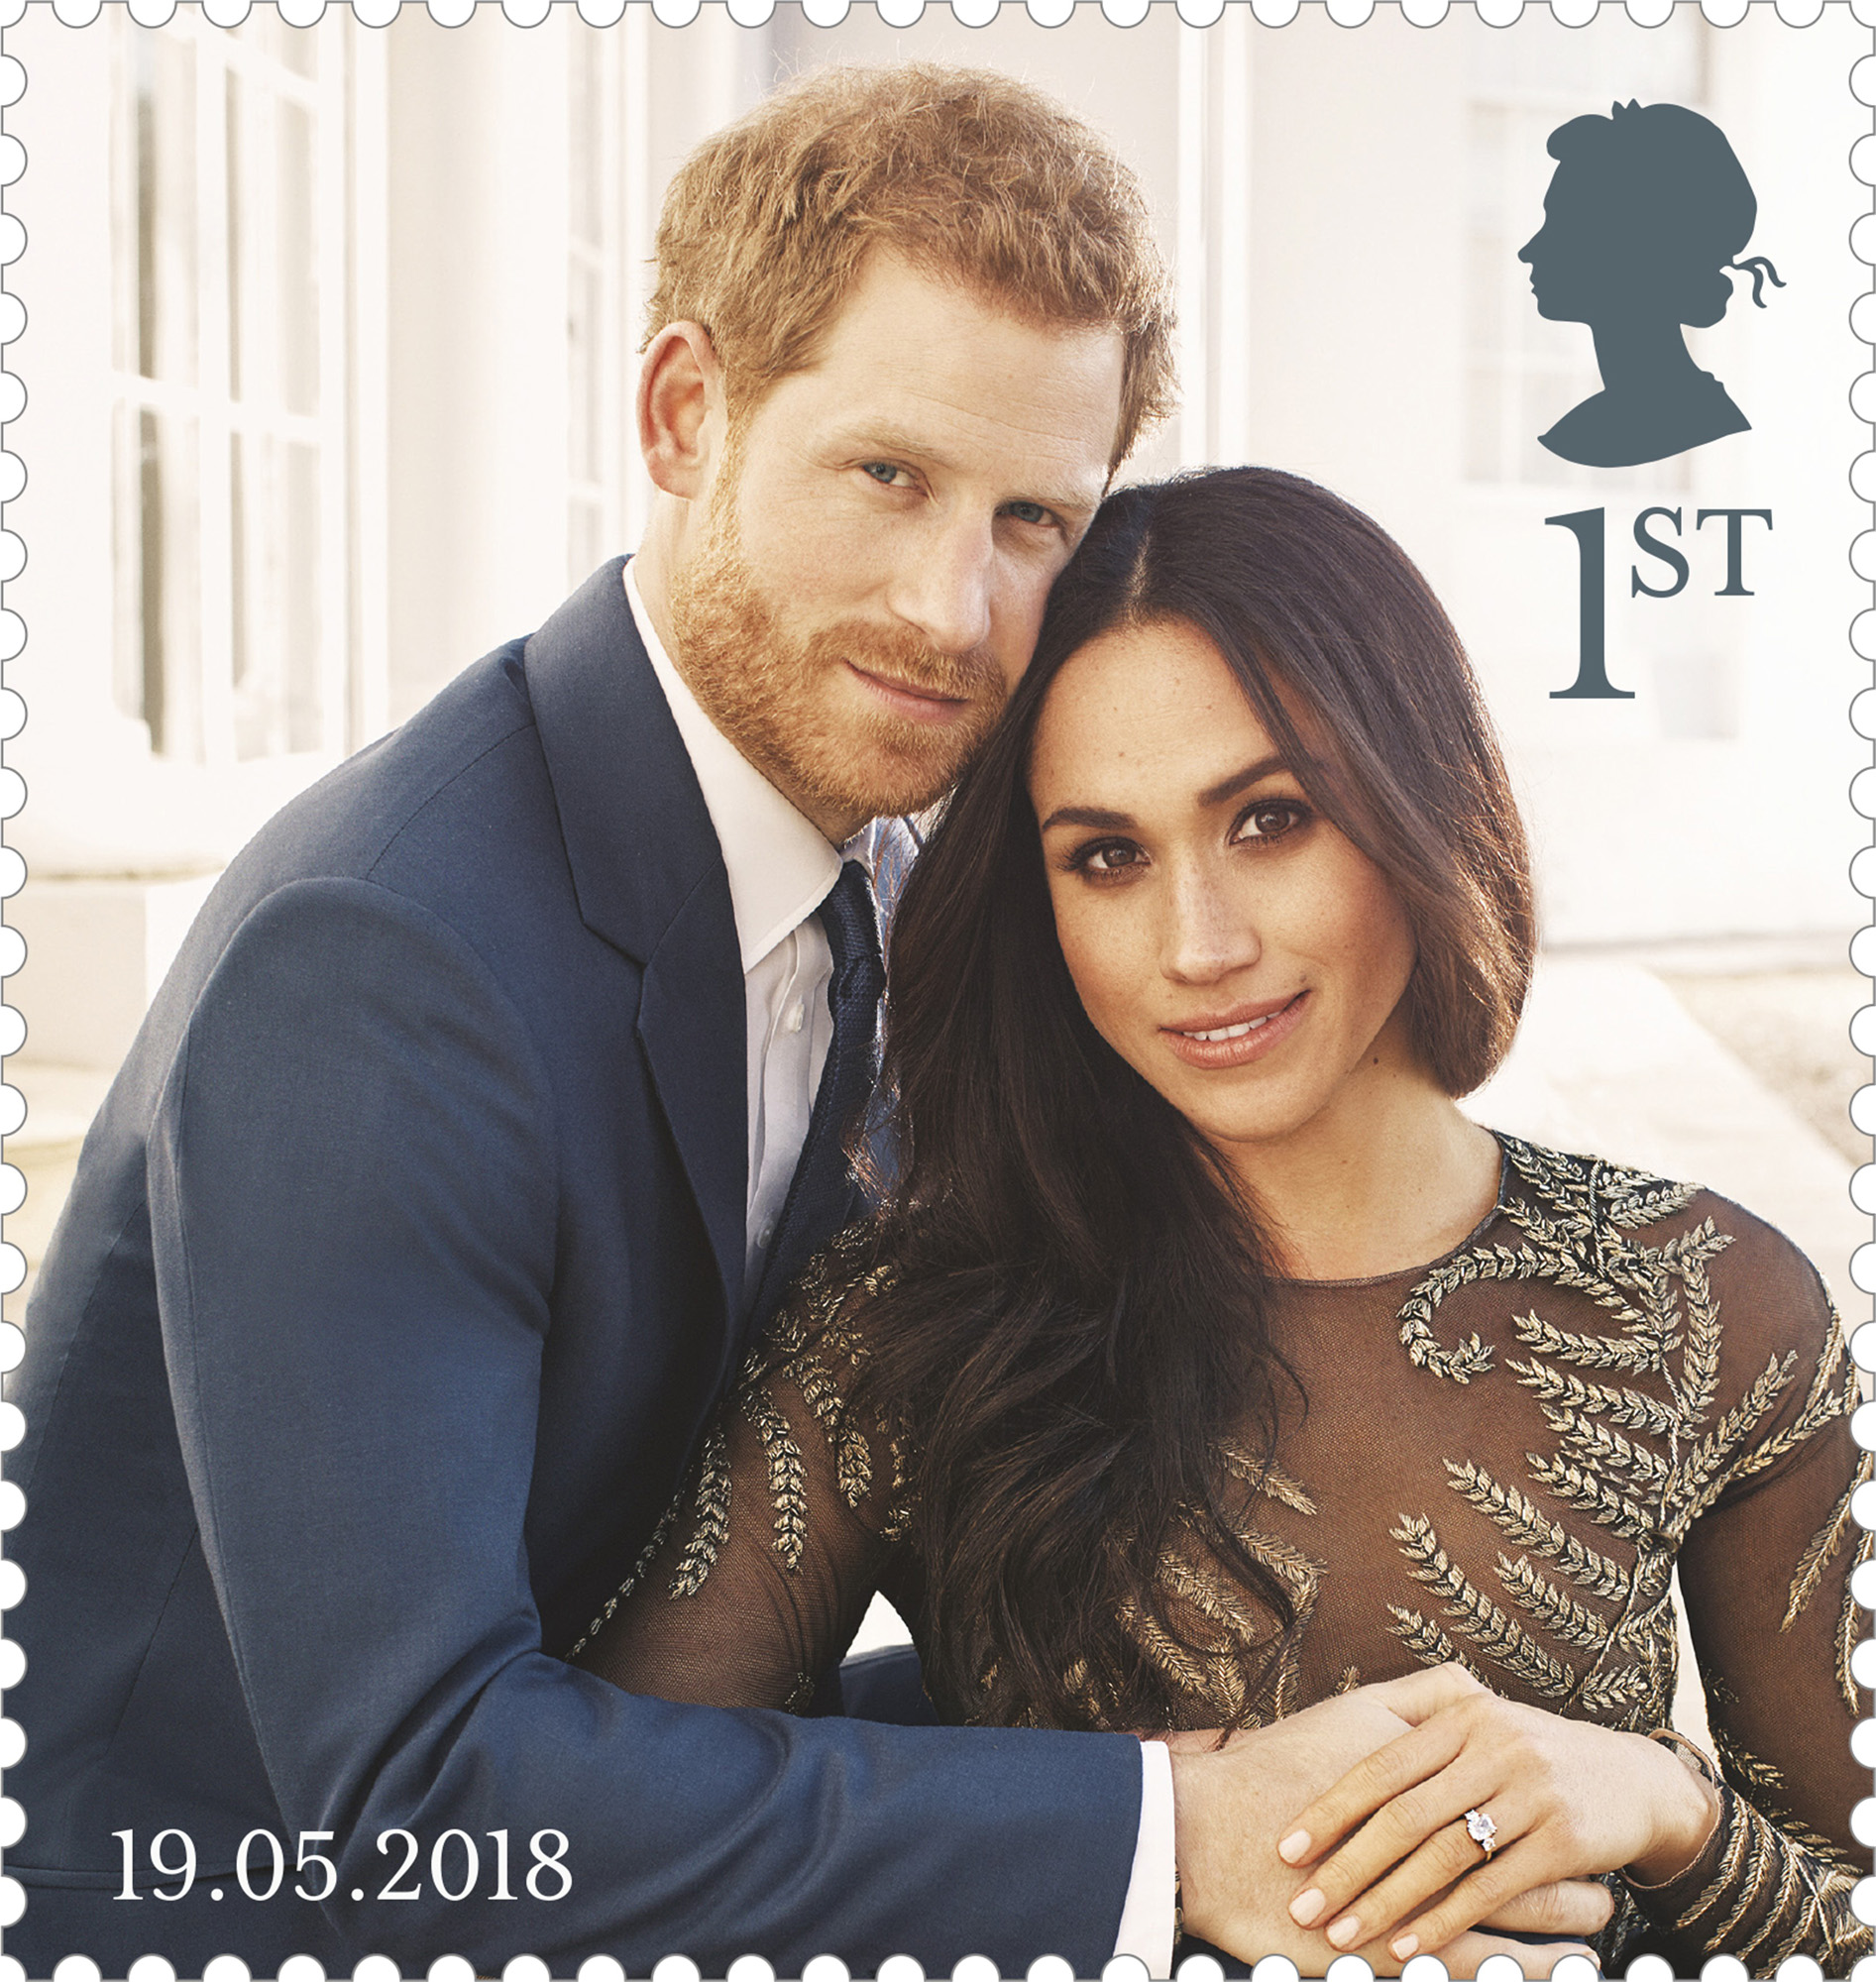 Prince Harry and Ms Meghan Markle 1st Class stamp